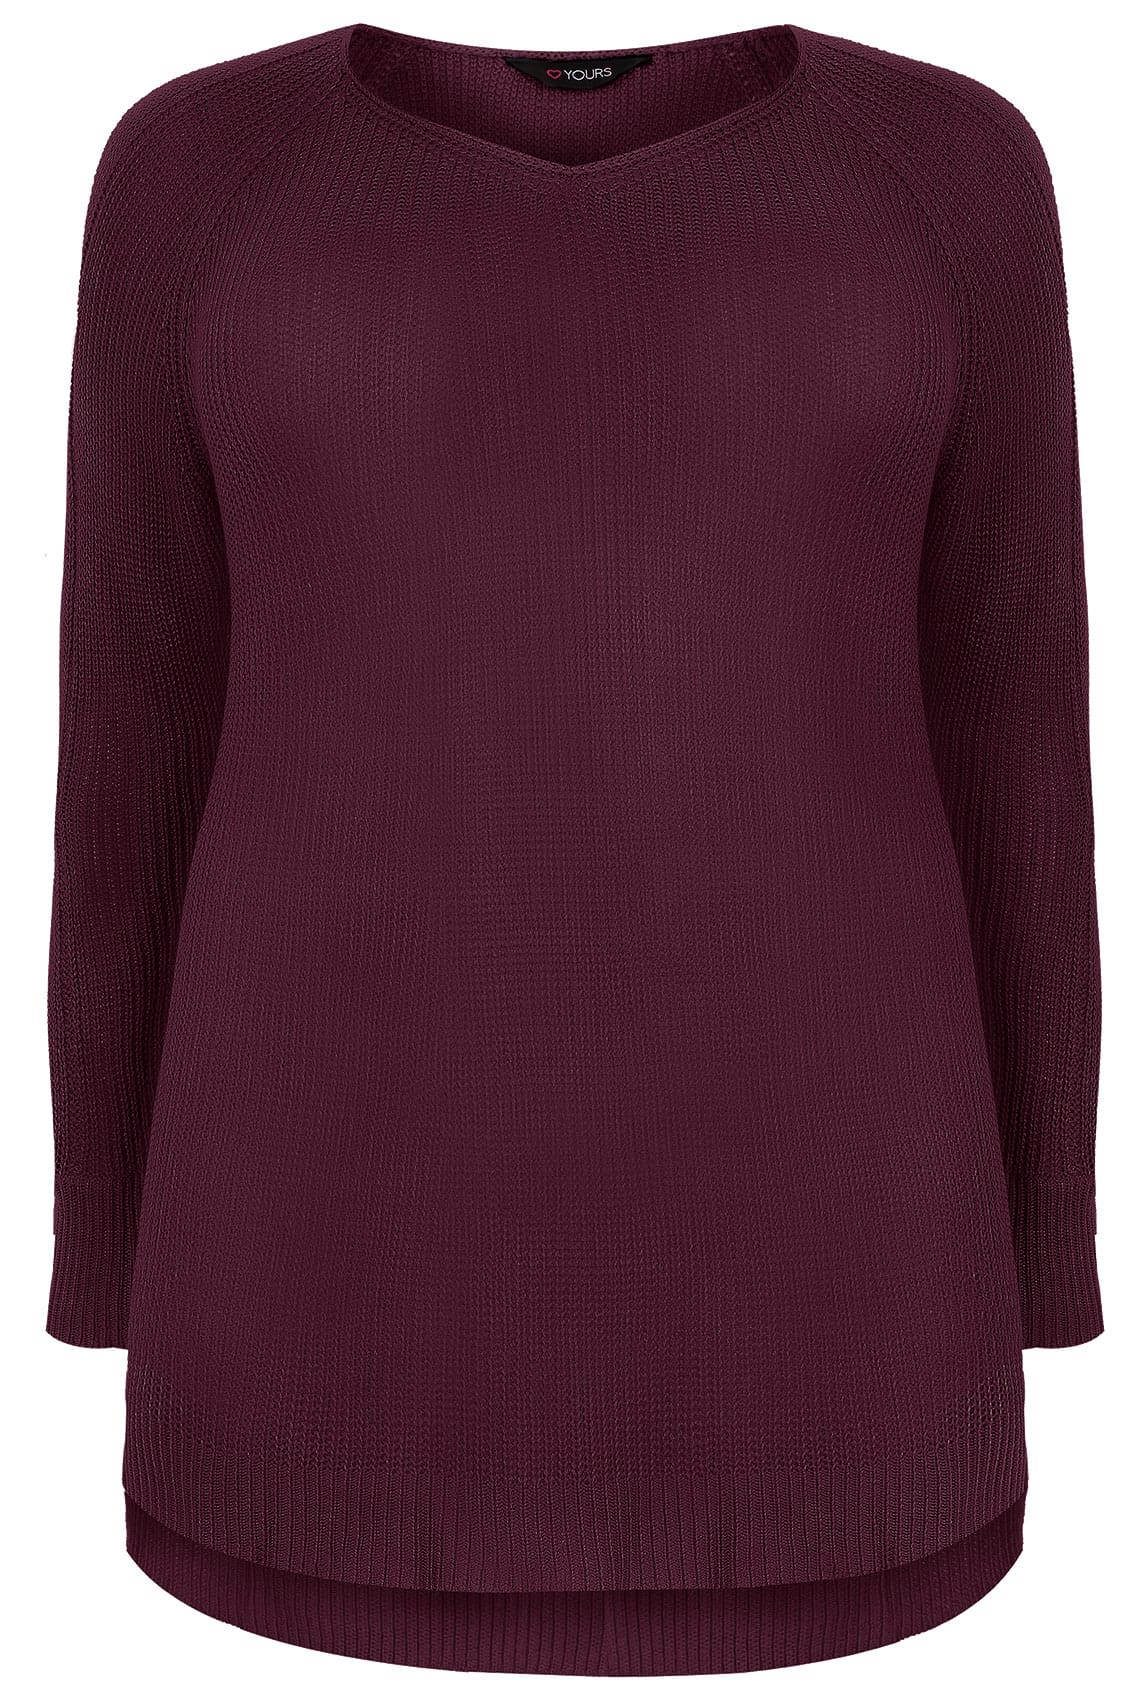 Find purple from the Womens department at Debenhams. Shop a wide range of Jumpers products and more at our online shop today.